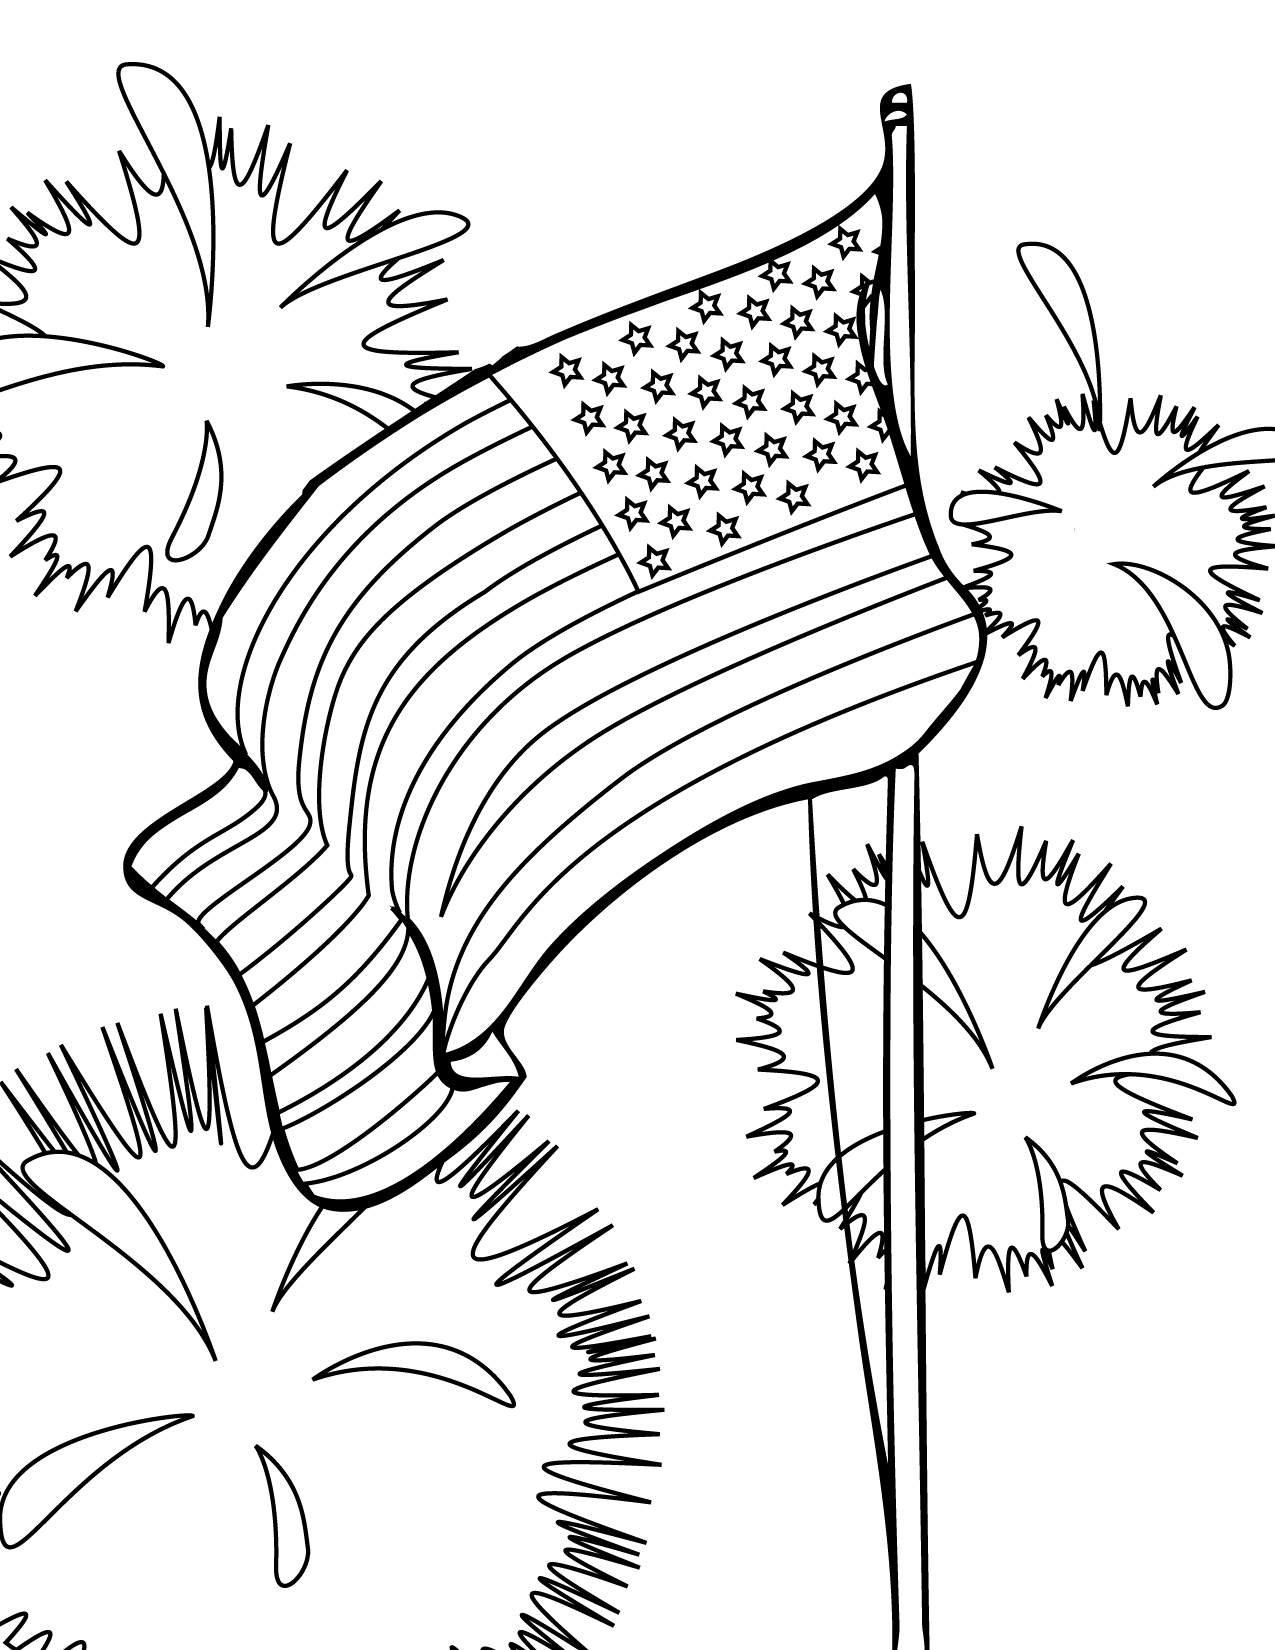 american flag coloring page free printable pictures coloring